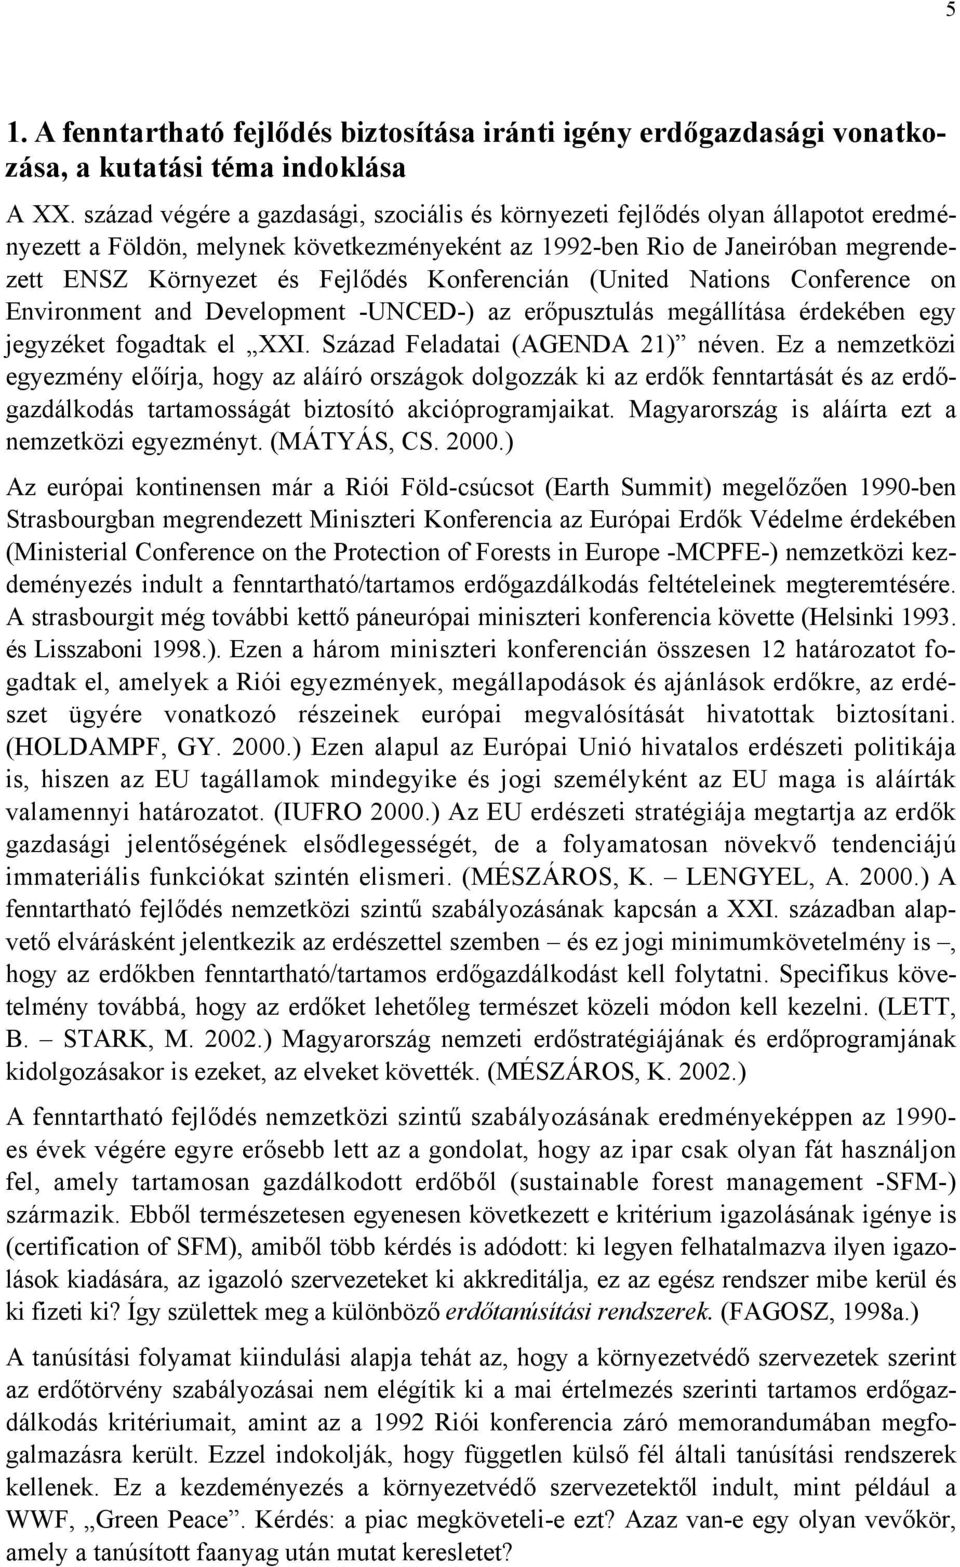 Konferencián (United Nations Conference on Environment and Development -UNCED-) az erőpusztulás megállítása érdekében egy jegyzéket fogadtak el XXI. Század Feladatai (AGENDA 21) néven.